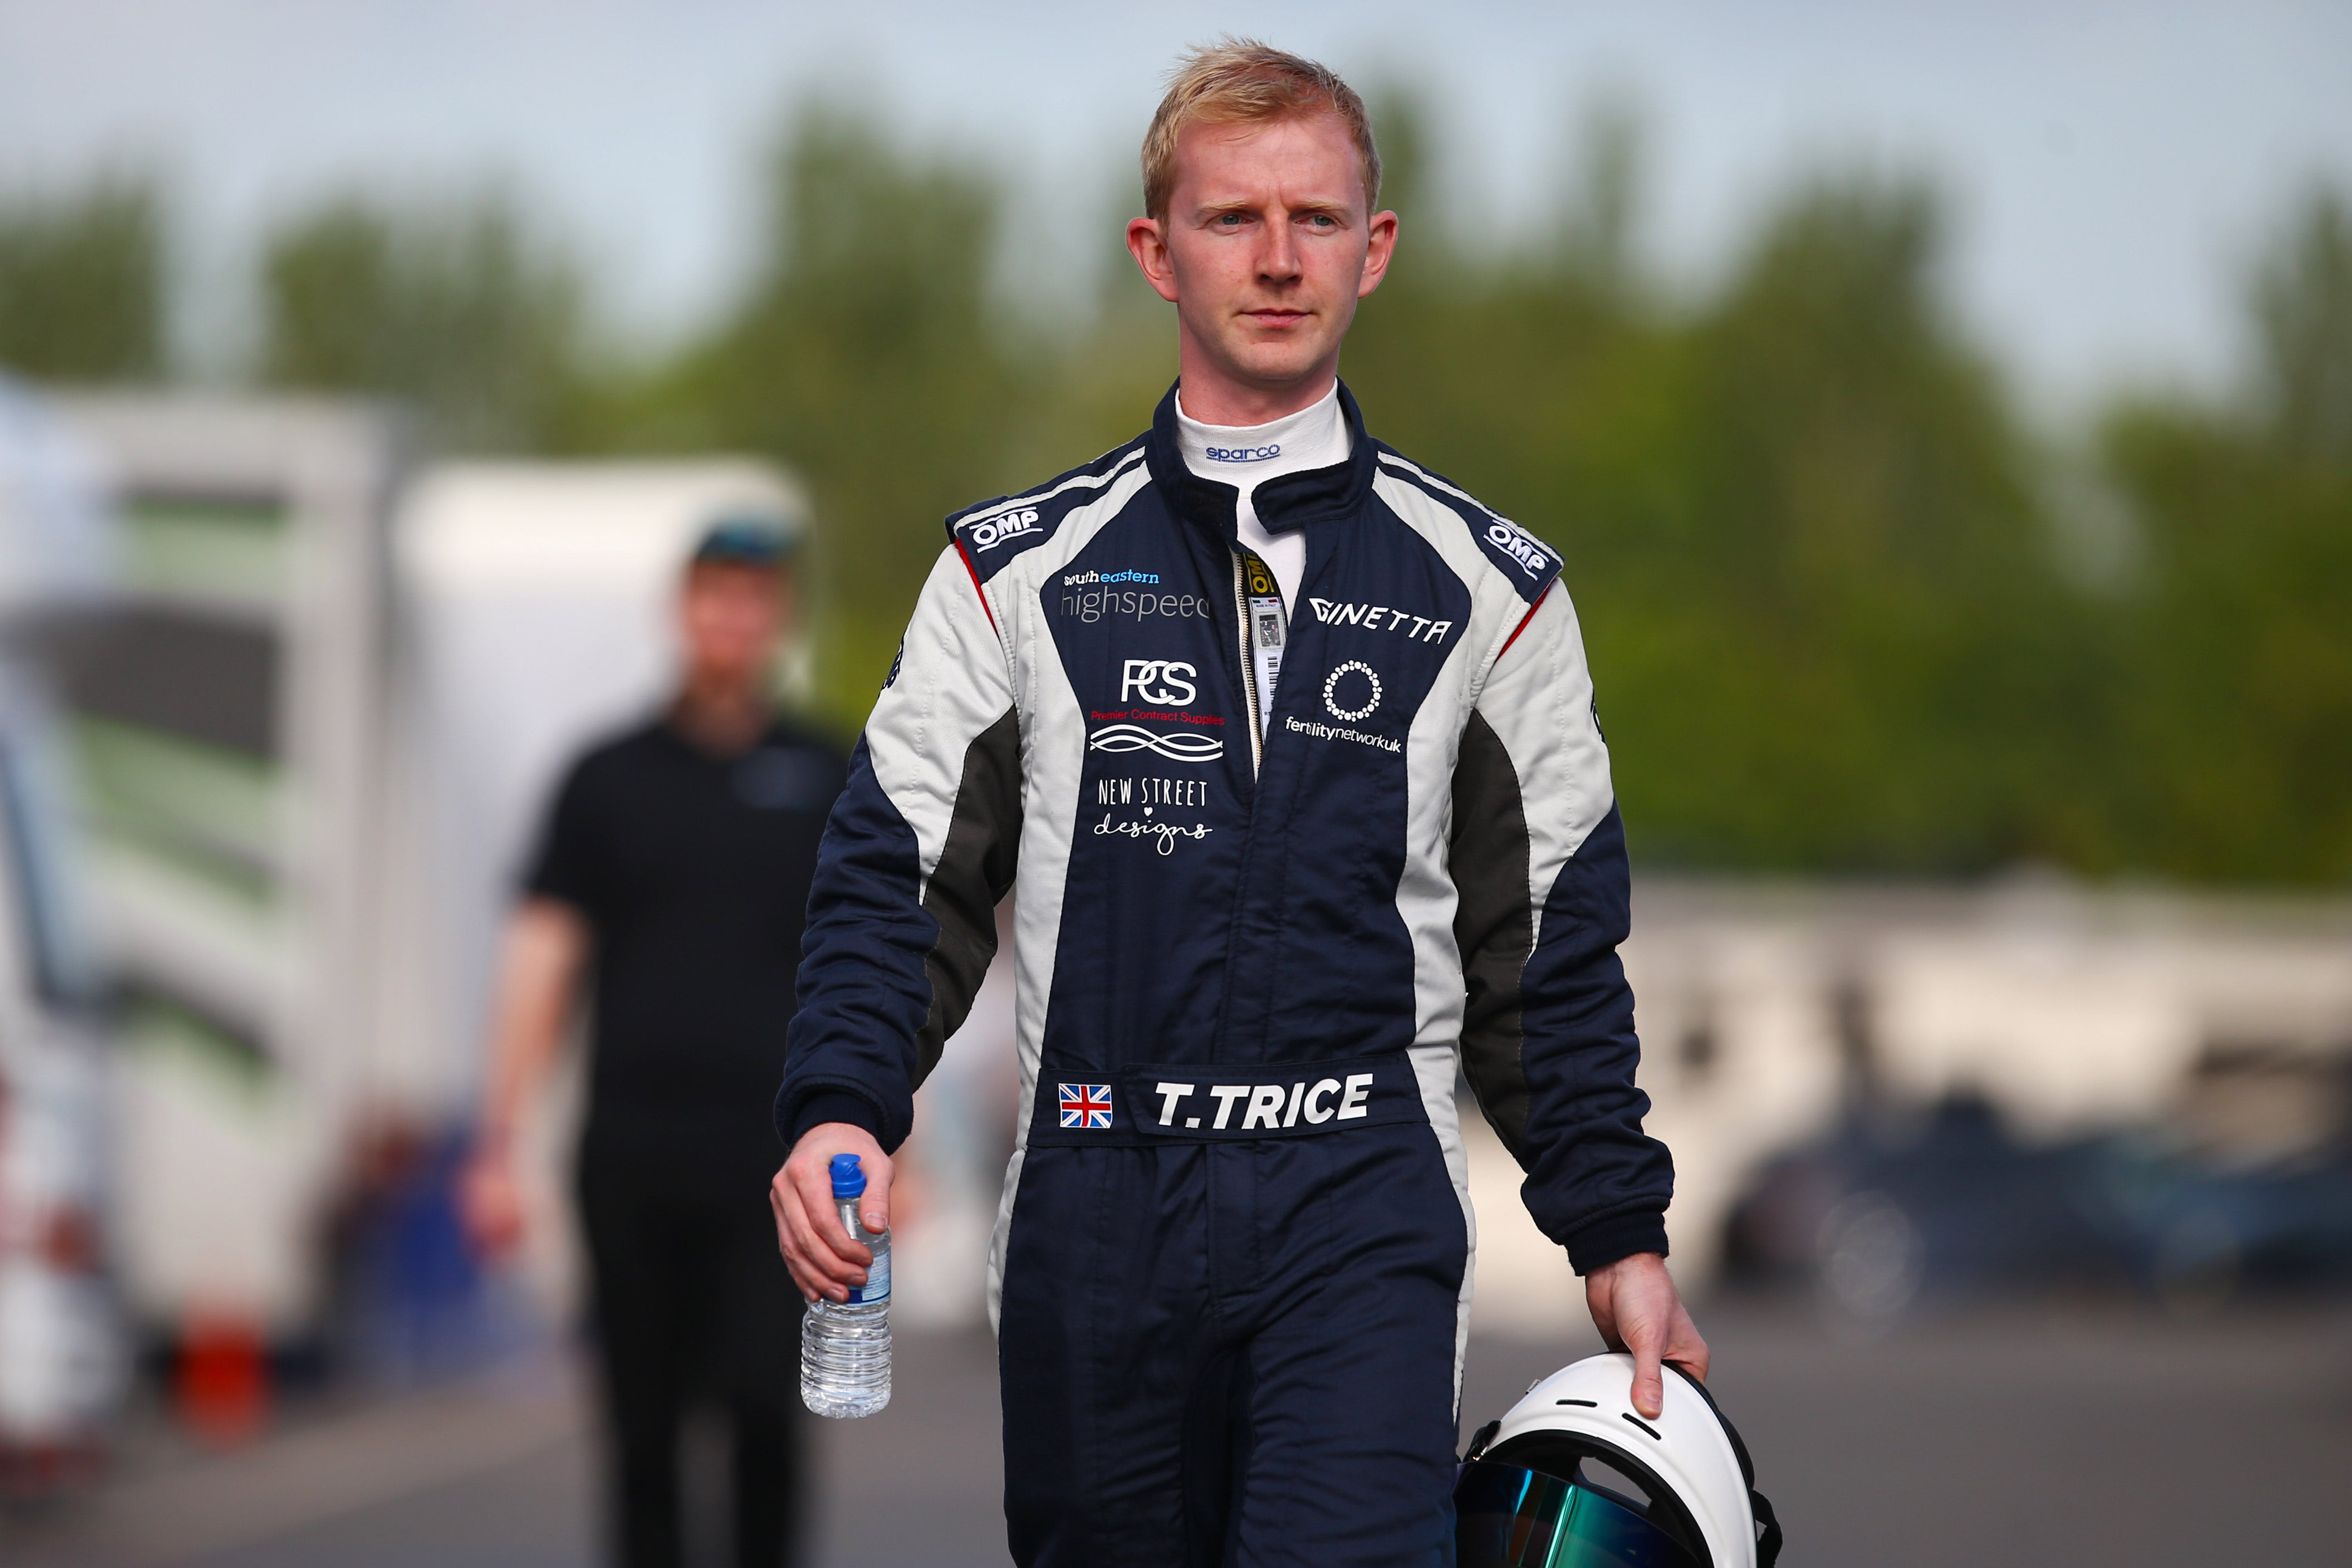 Toby Trice in his racing gear, holding the helmet in his hand, bottle of water in another, walking towards the camera.